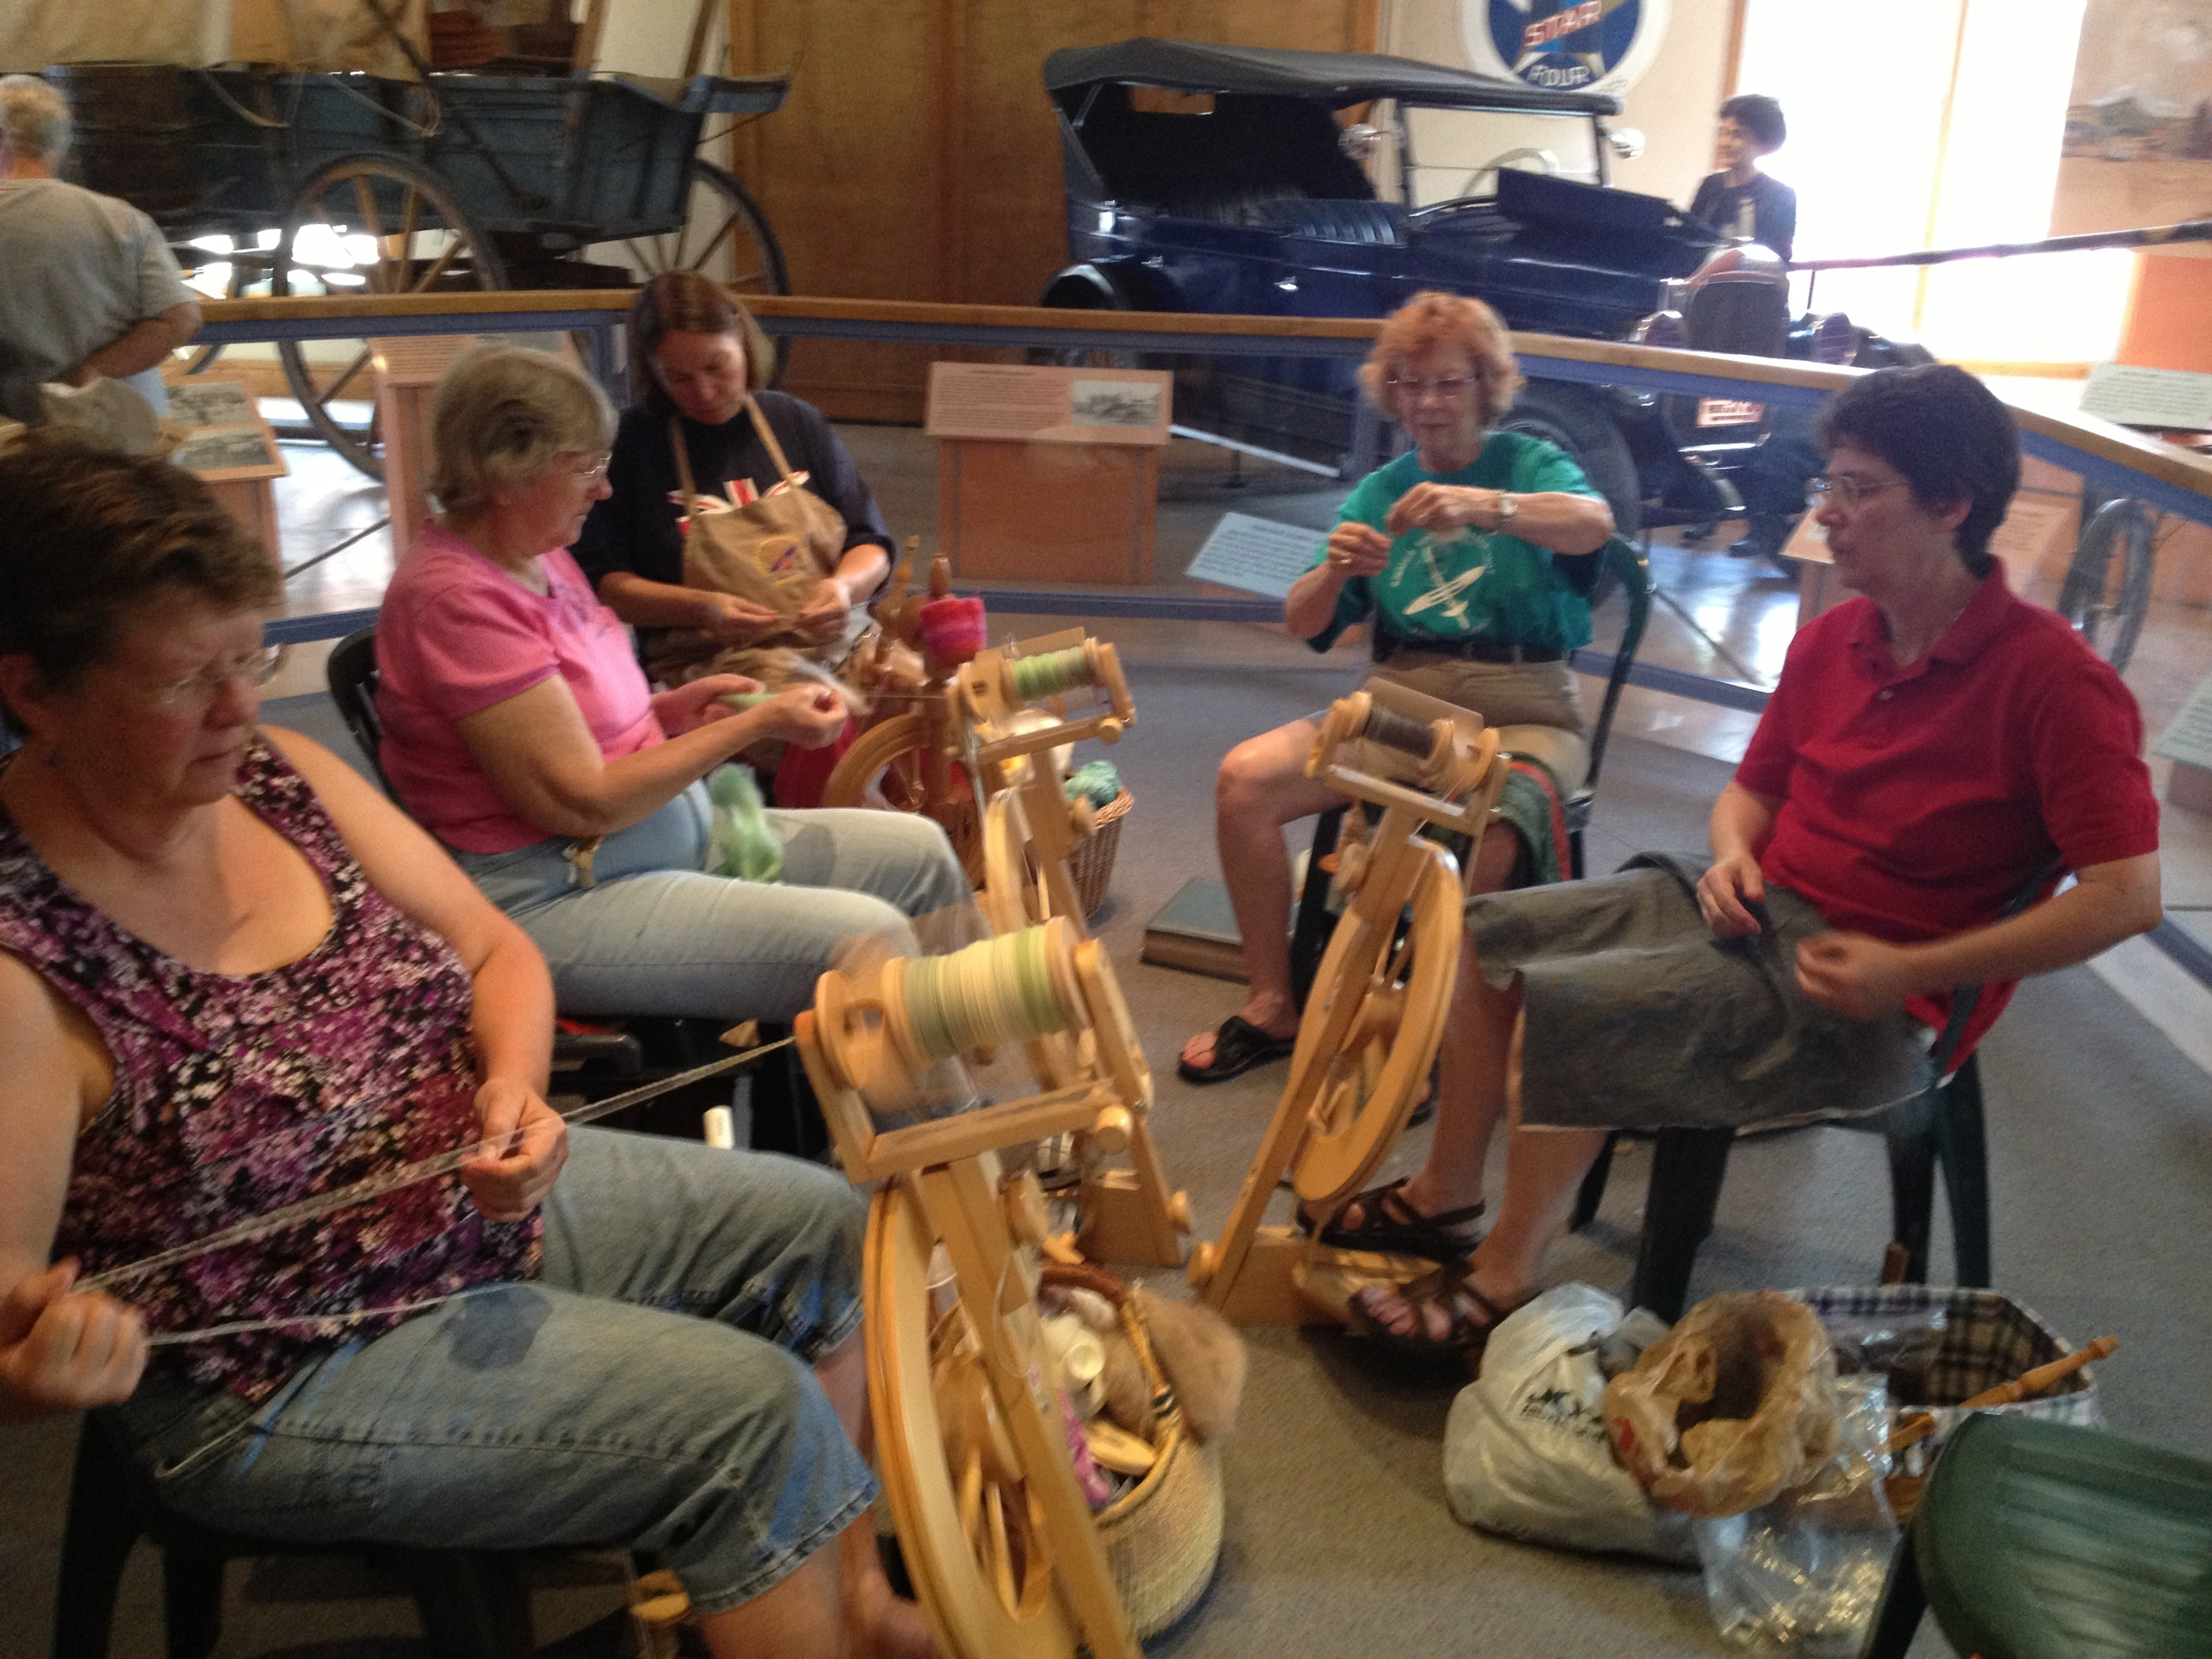 The spinning guild members demonstrating their skills